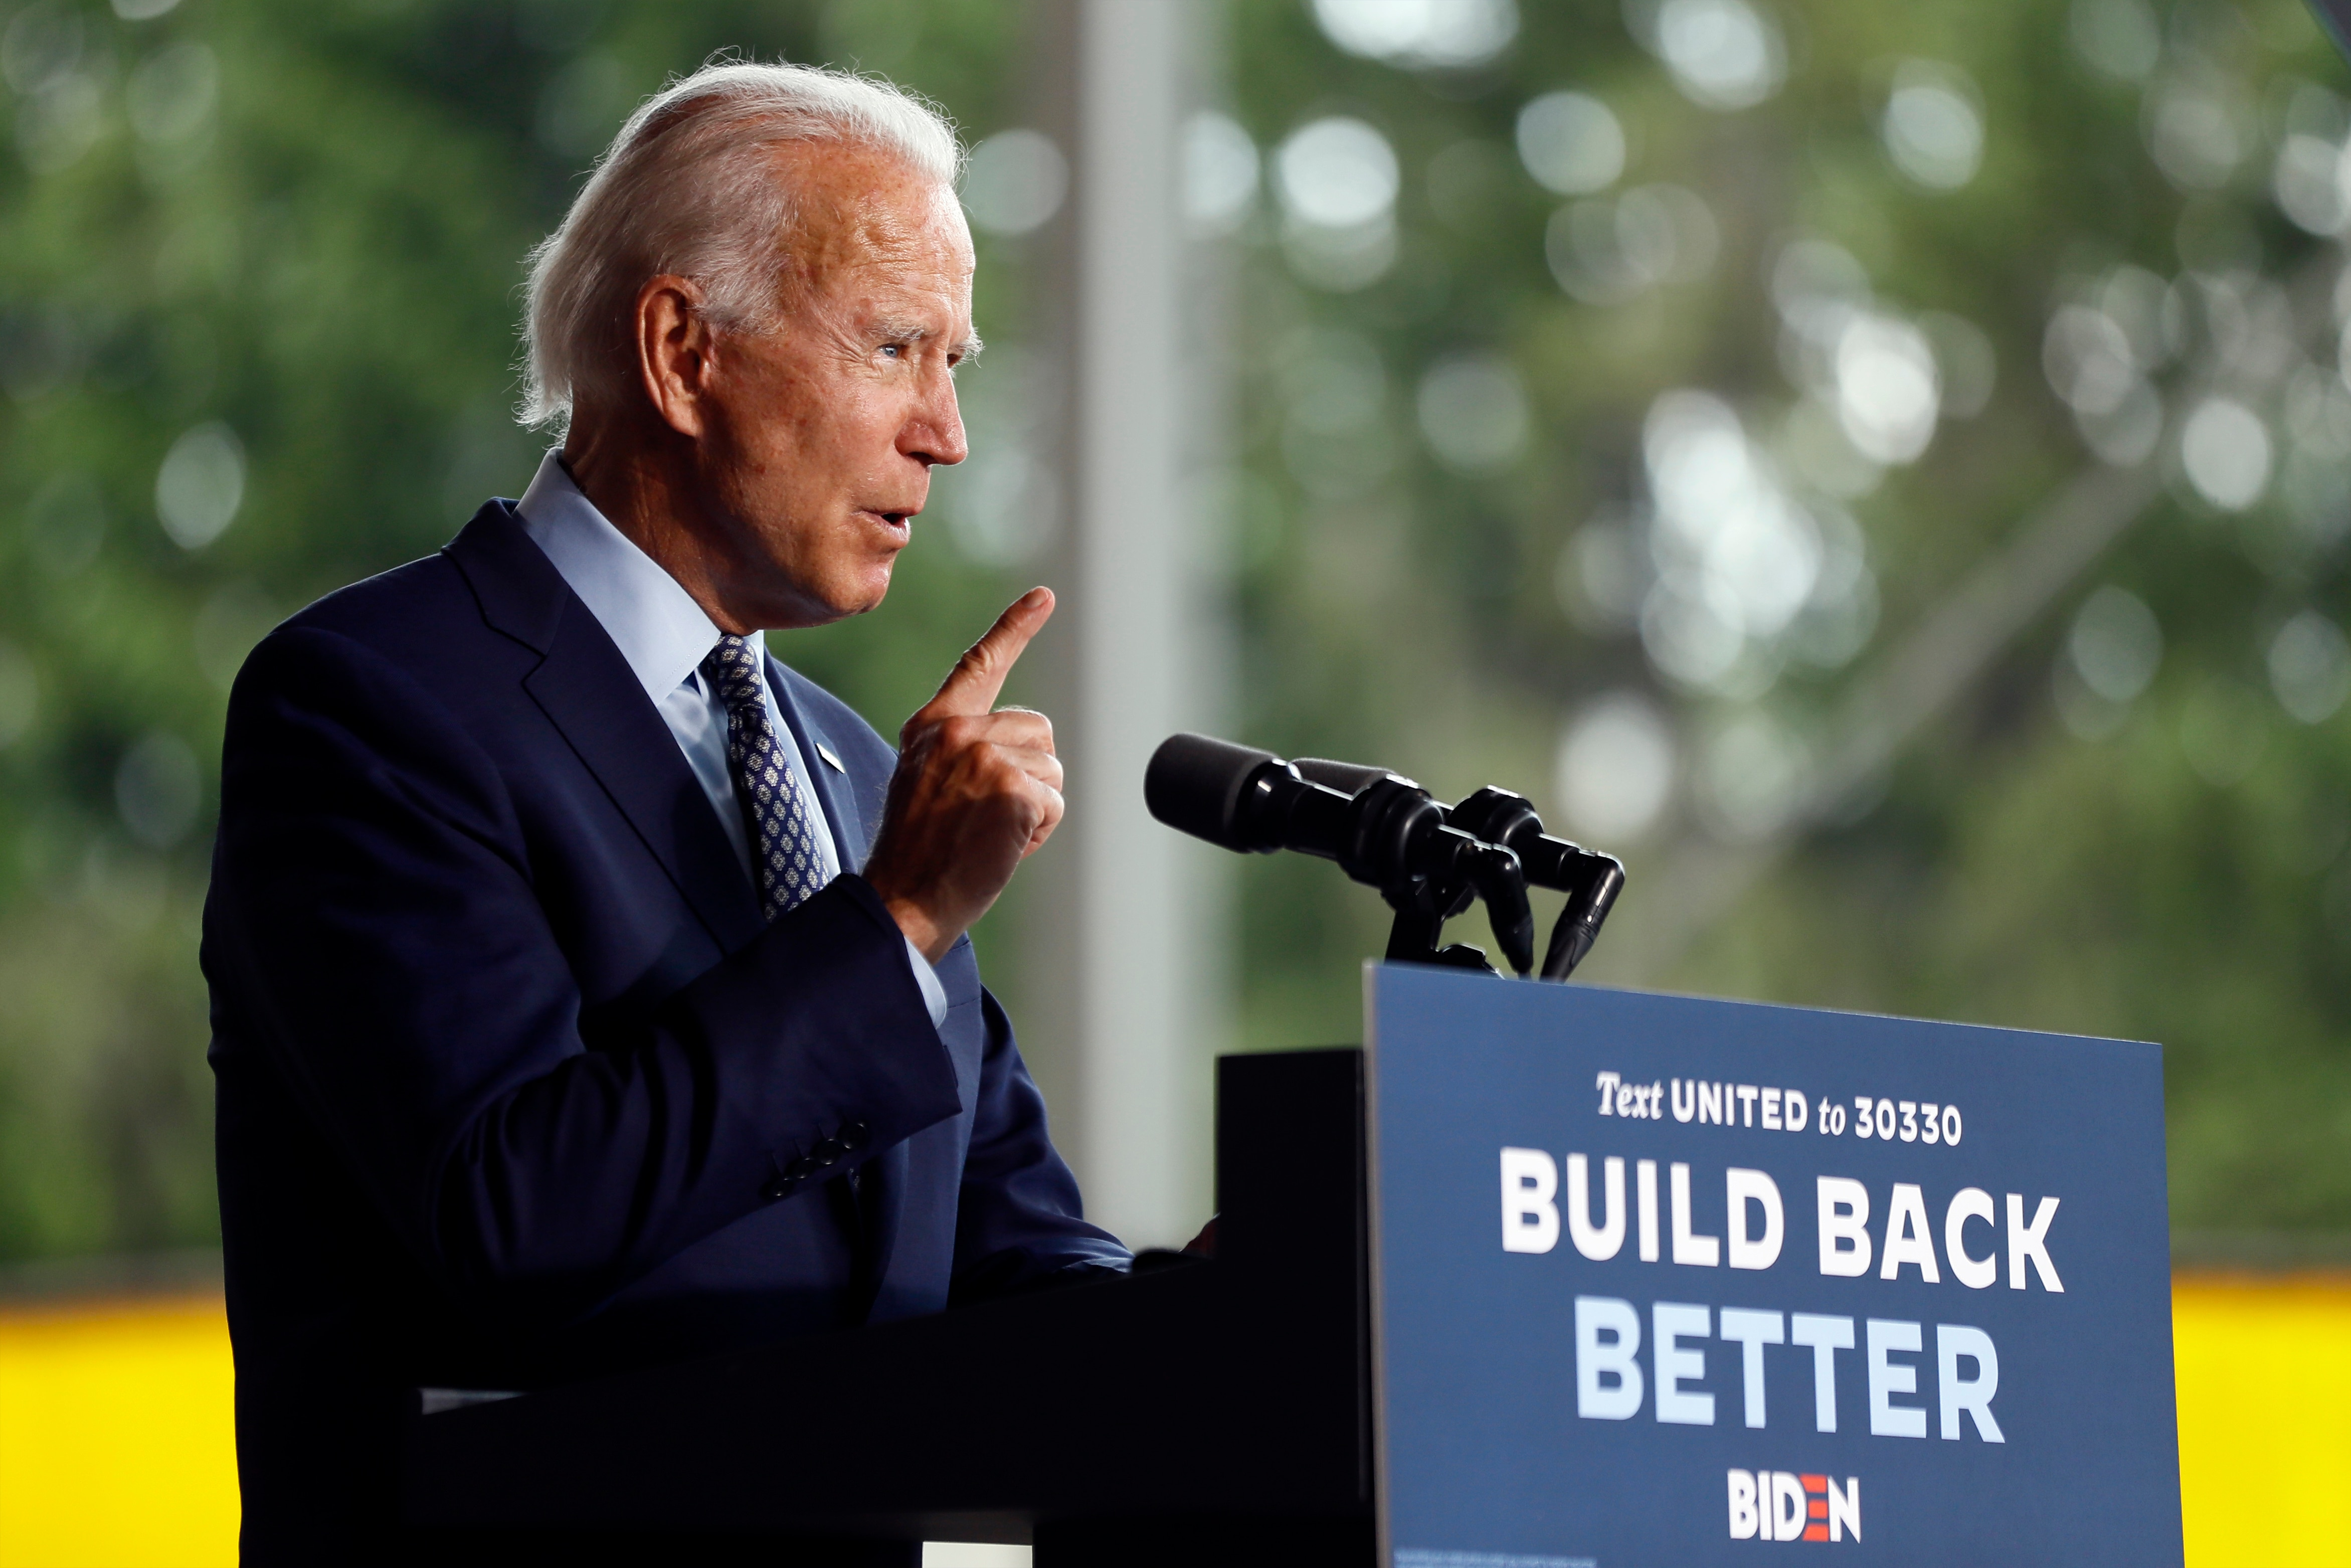 Biden Attacks Trump as Caring Only About Stock Market as US Economy Founders